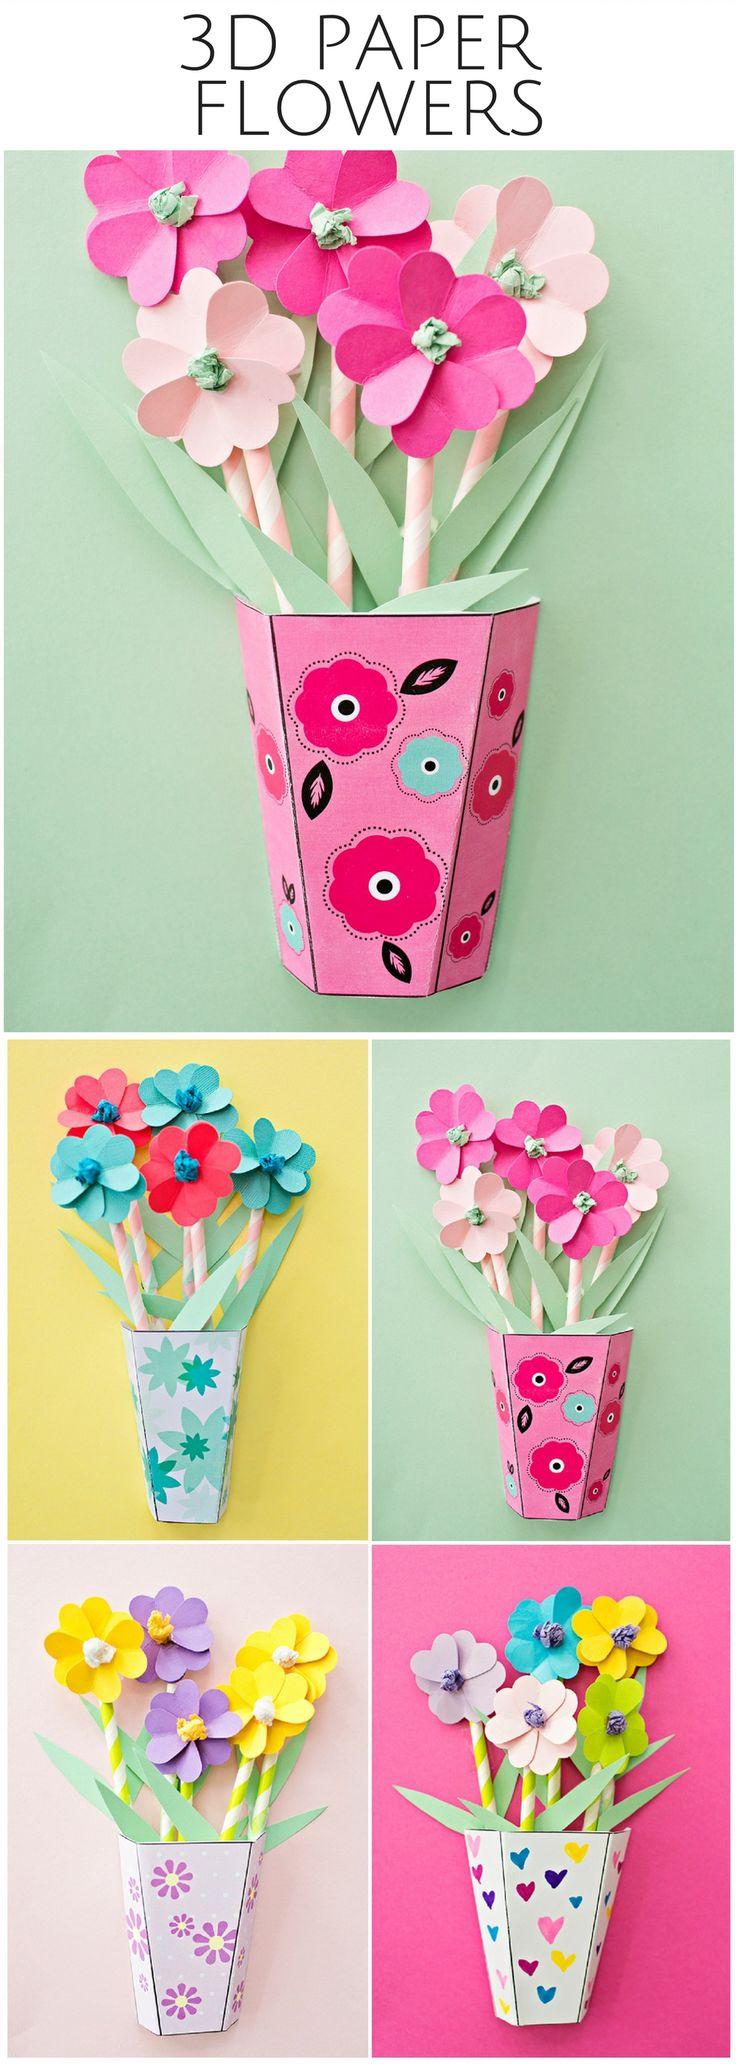 How to make 3D Paper Flower Bouquets with Video and Free Templates. Great gift for Mother's Day and paper craft for kids!